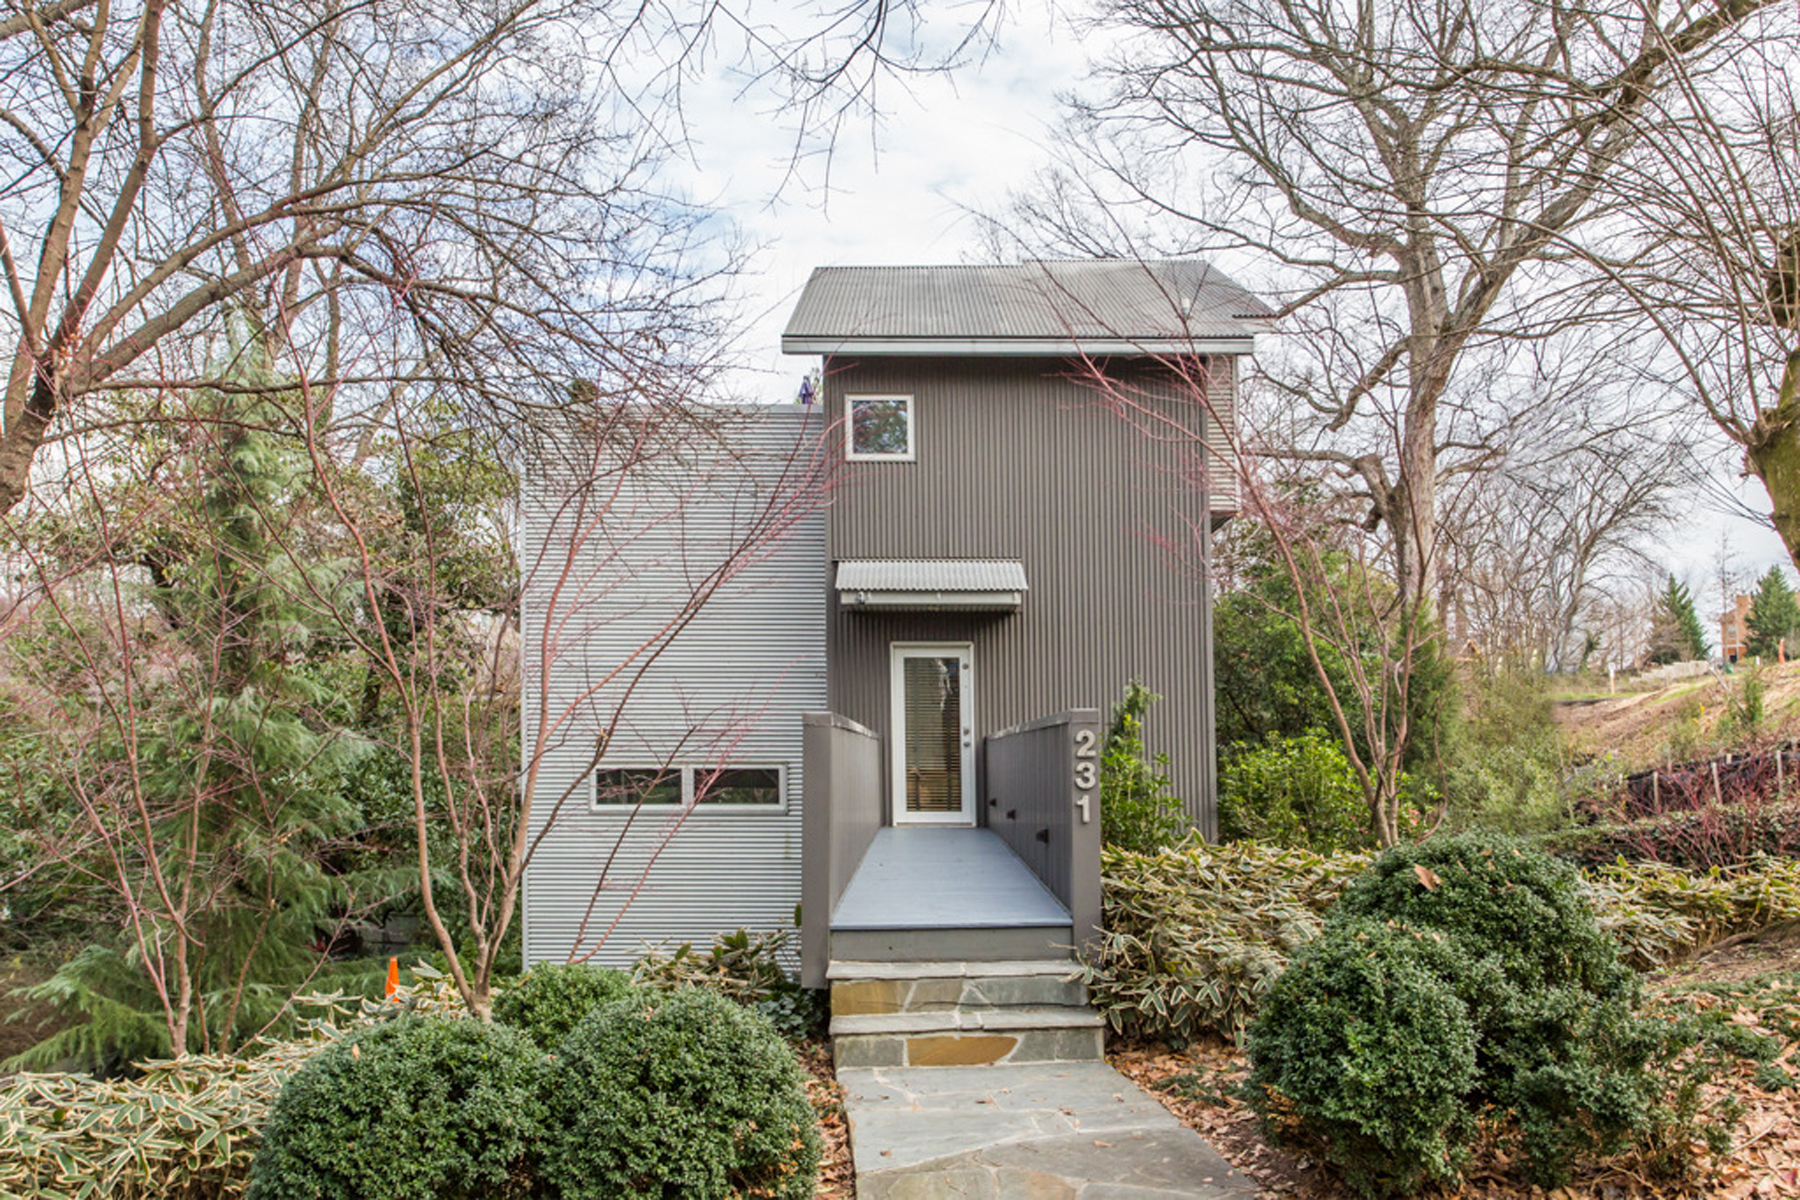 Single Family Home for Sale at Rare opportunity for a Modern Oasis in the heart of Historic Inman Park 231 Degress Avenue NE Inman Park, Atlanta, Georgia, 30307 United States